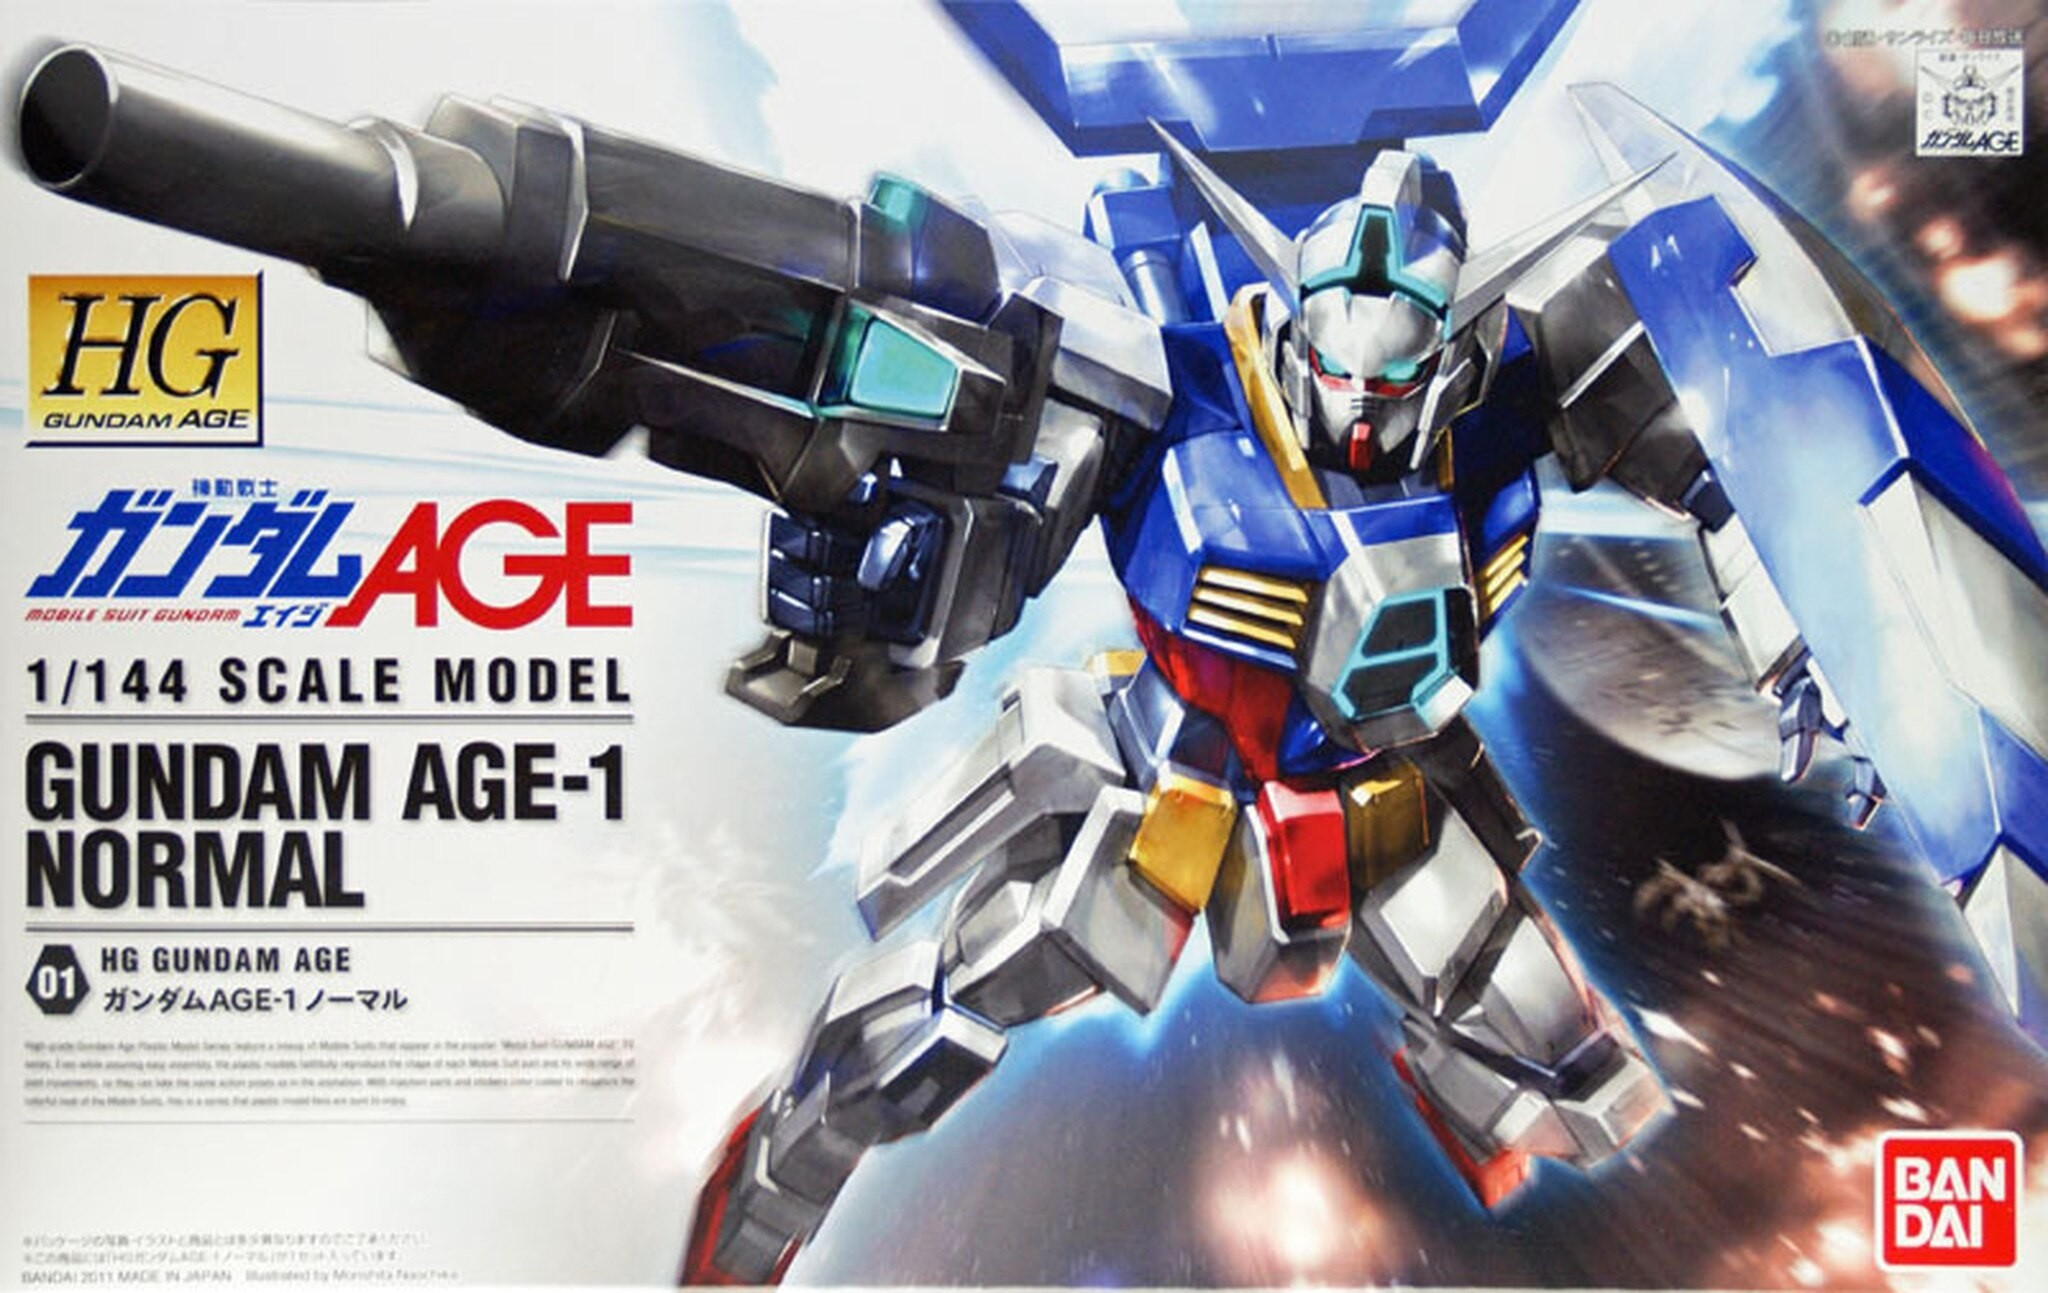 HGUC GUNDAM AGE-1 NORMAL 1/144 - GUNPLA